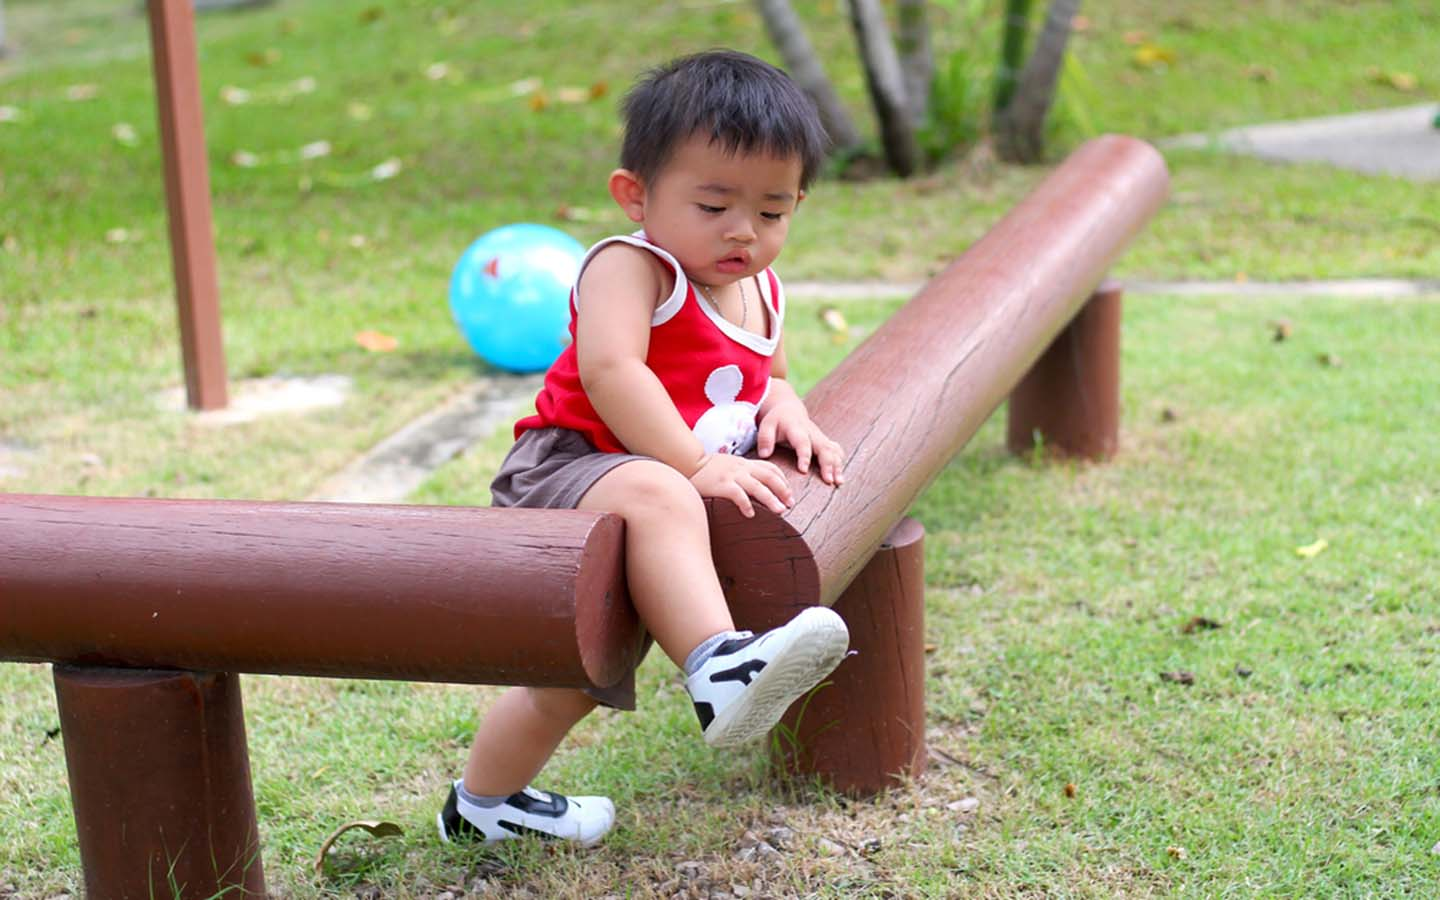 A boy playing in a park's kid area